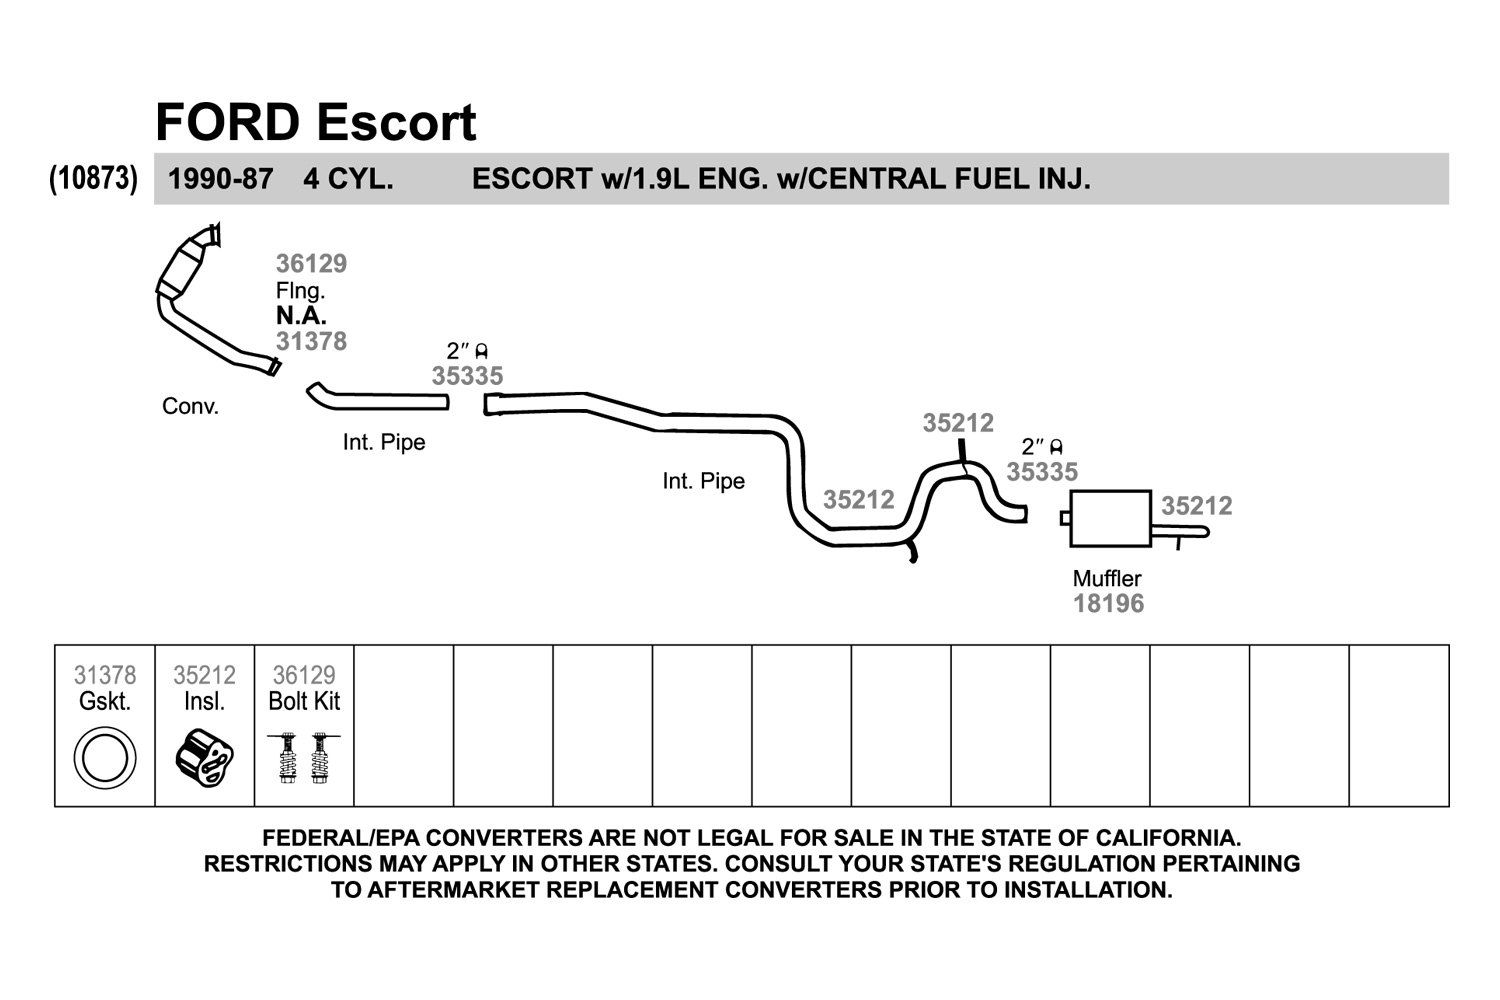 hight resolution of 1990 ford tempo exhaust system diagram electrical wiring diagram ford escape exhaust diagram ford zx2 exhaust